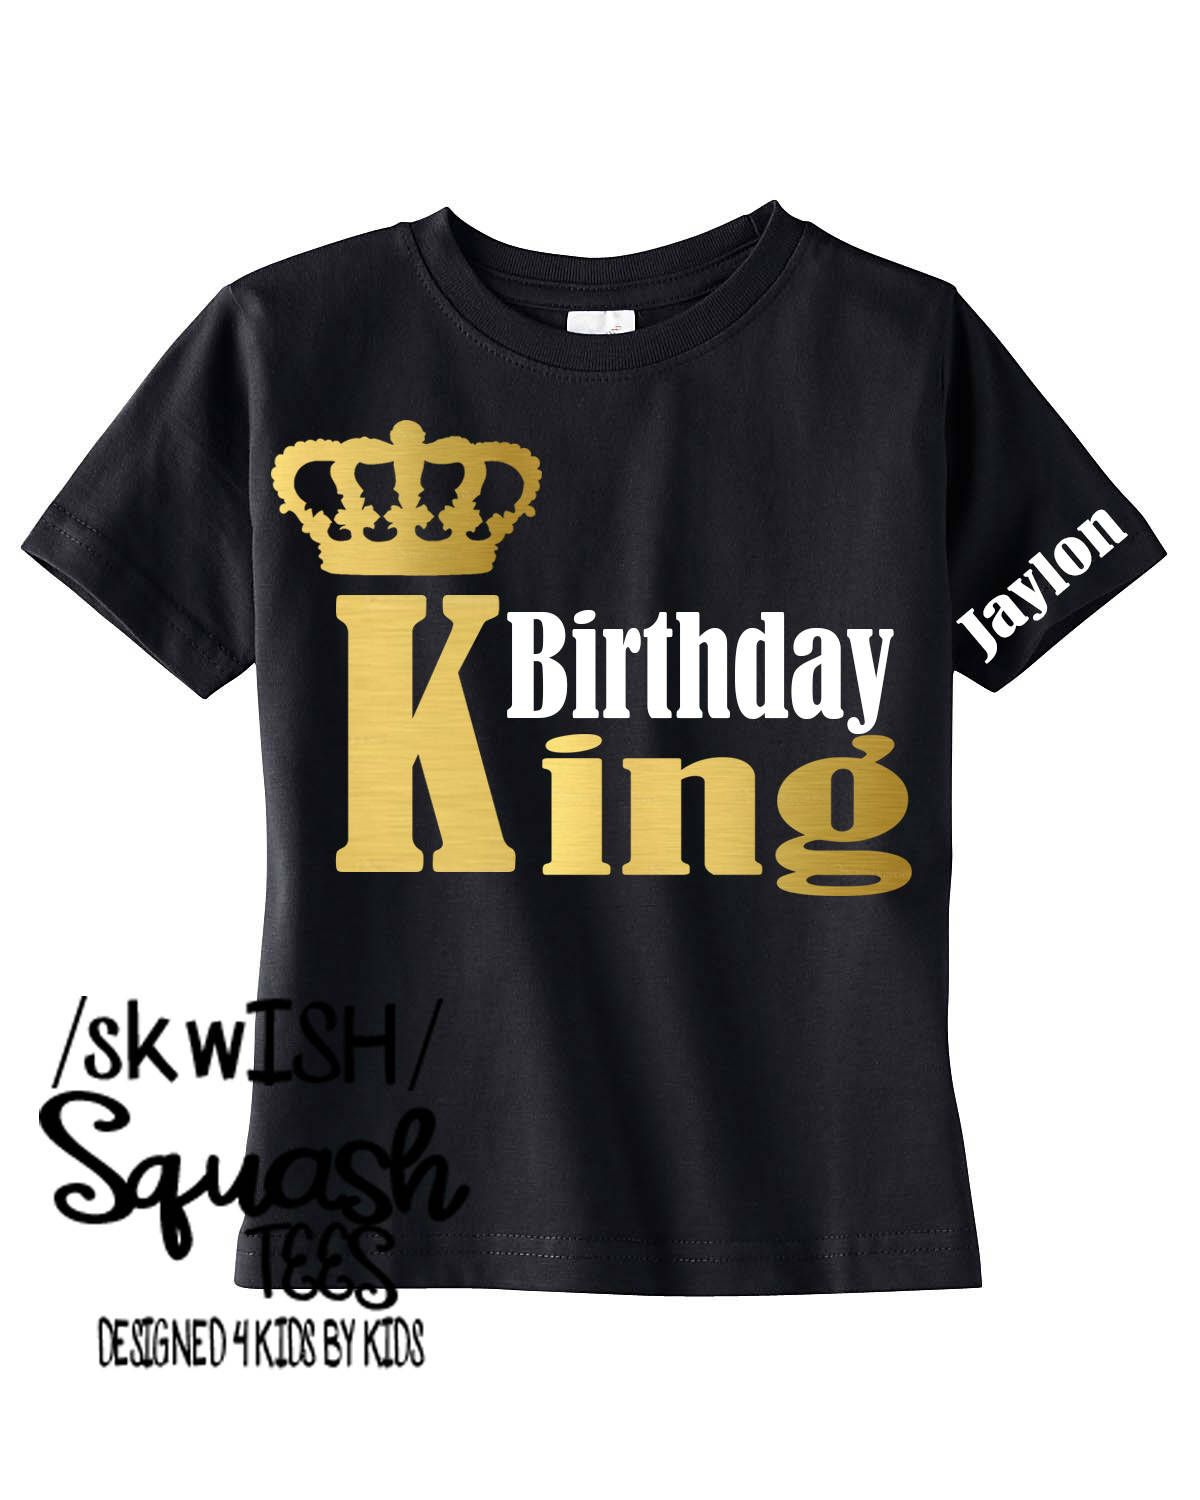 Birthday Boy Shirt ADULT Sizes Also Available Personalized King Custom Boys Birth